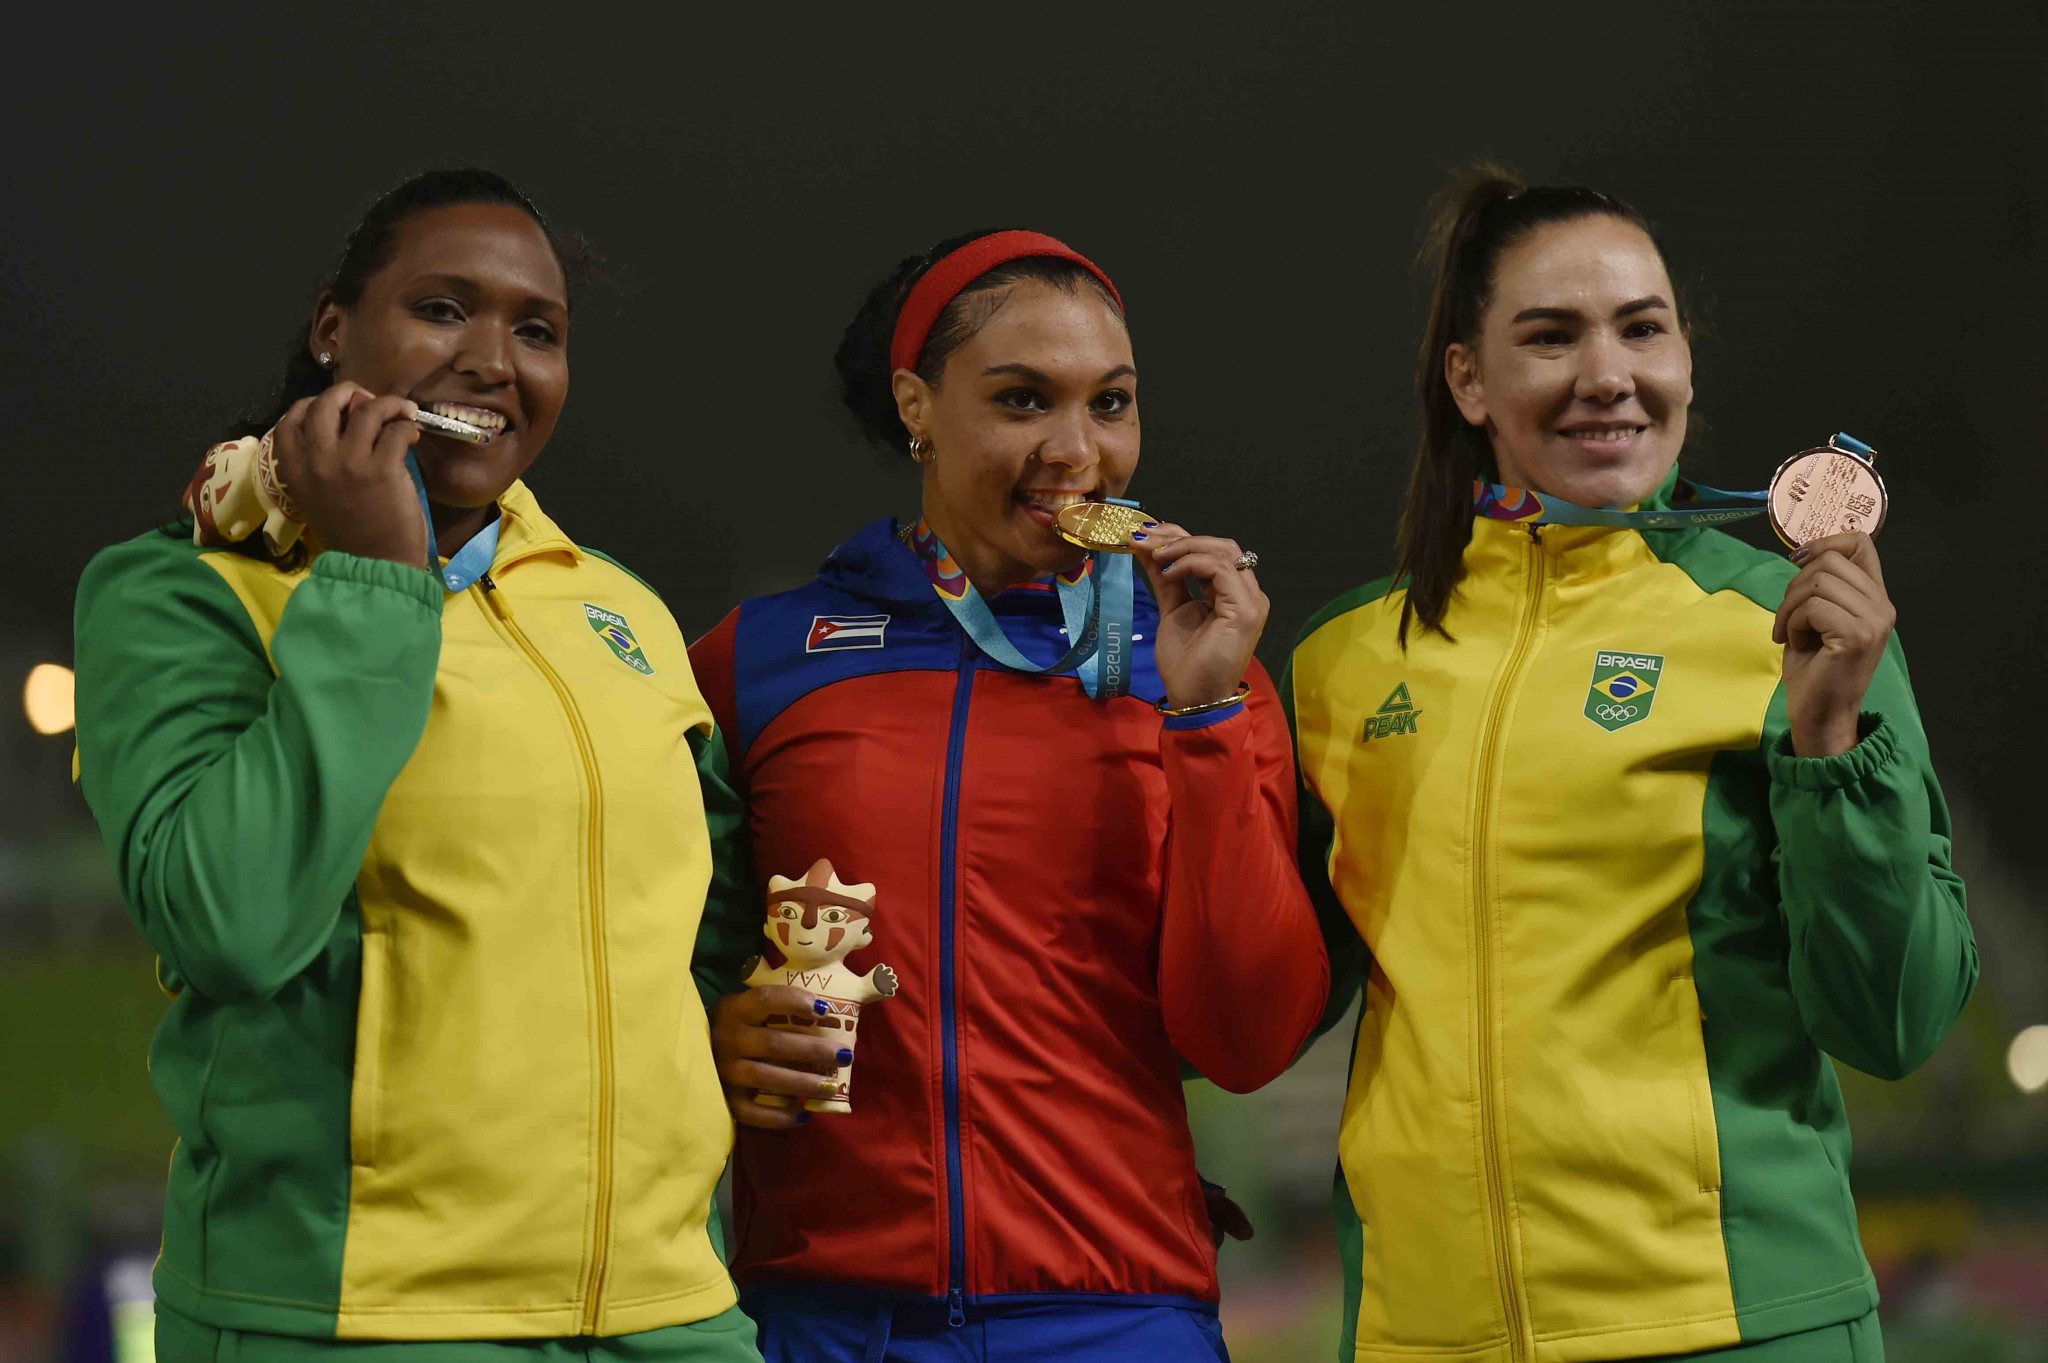 Andressa Oliveira de Morais was stripped of her silver medal at the Lima 2019 Pan American Games ©Getty Images